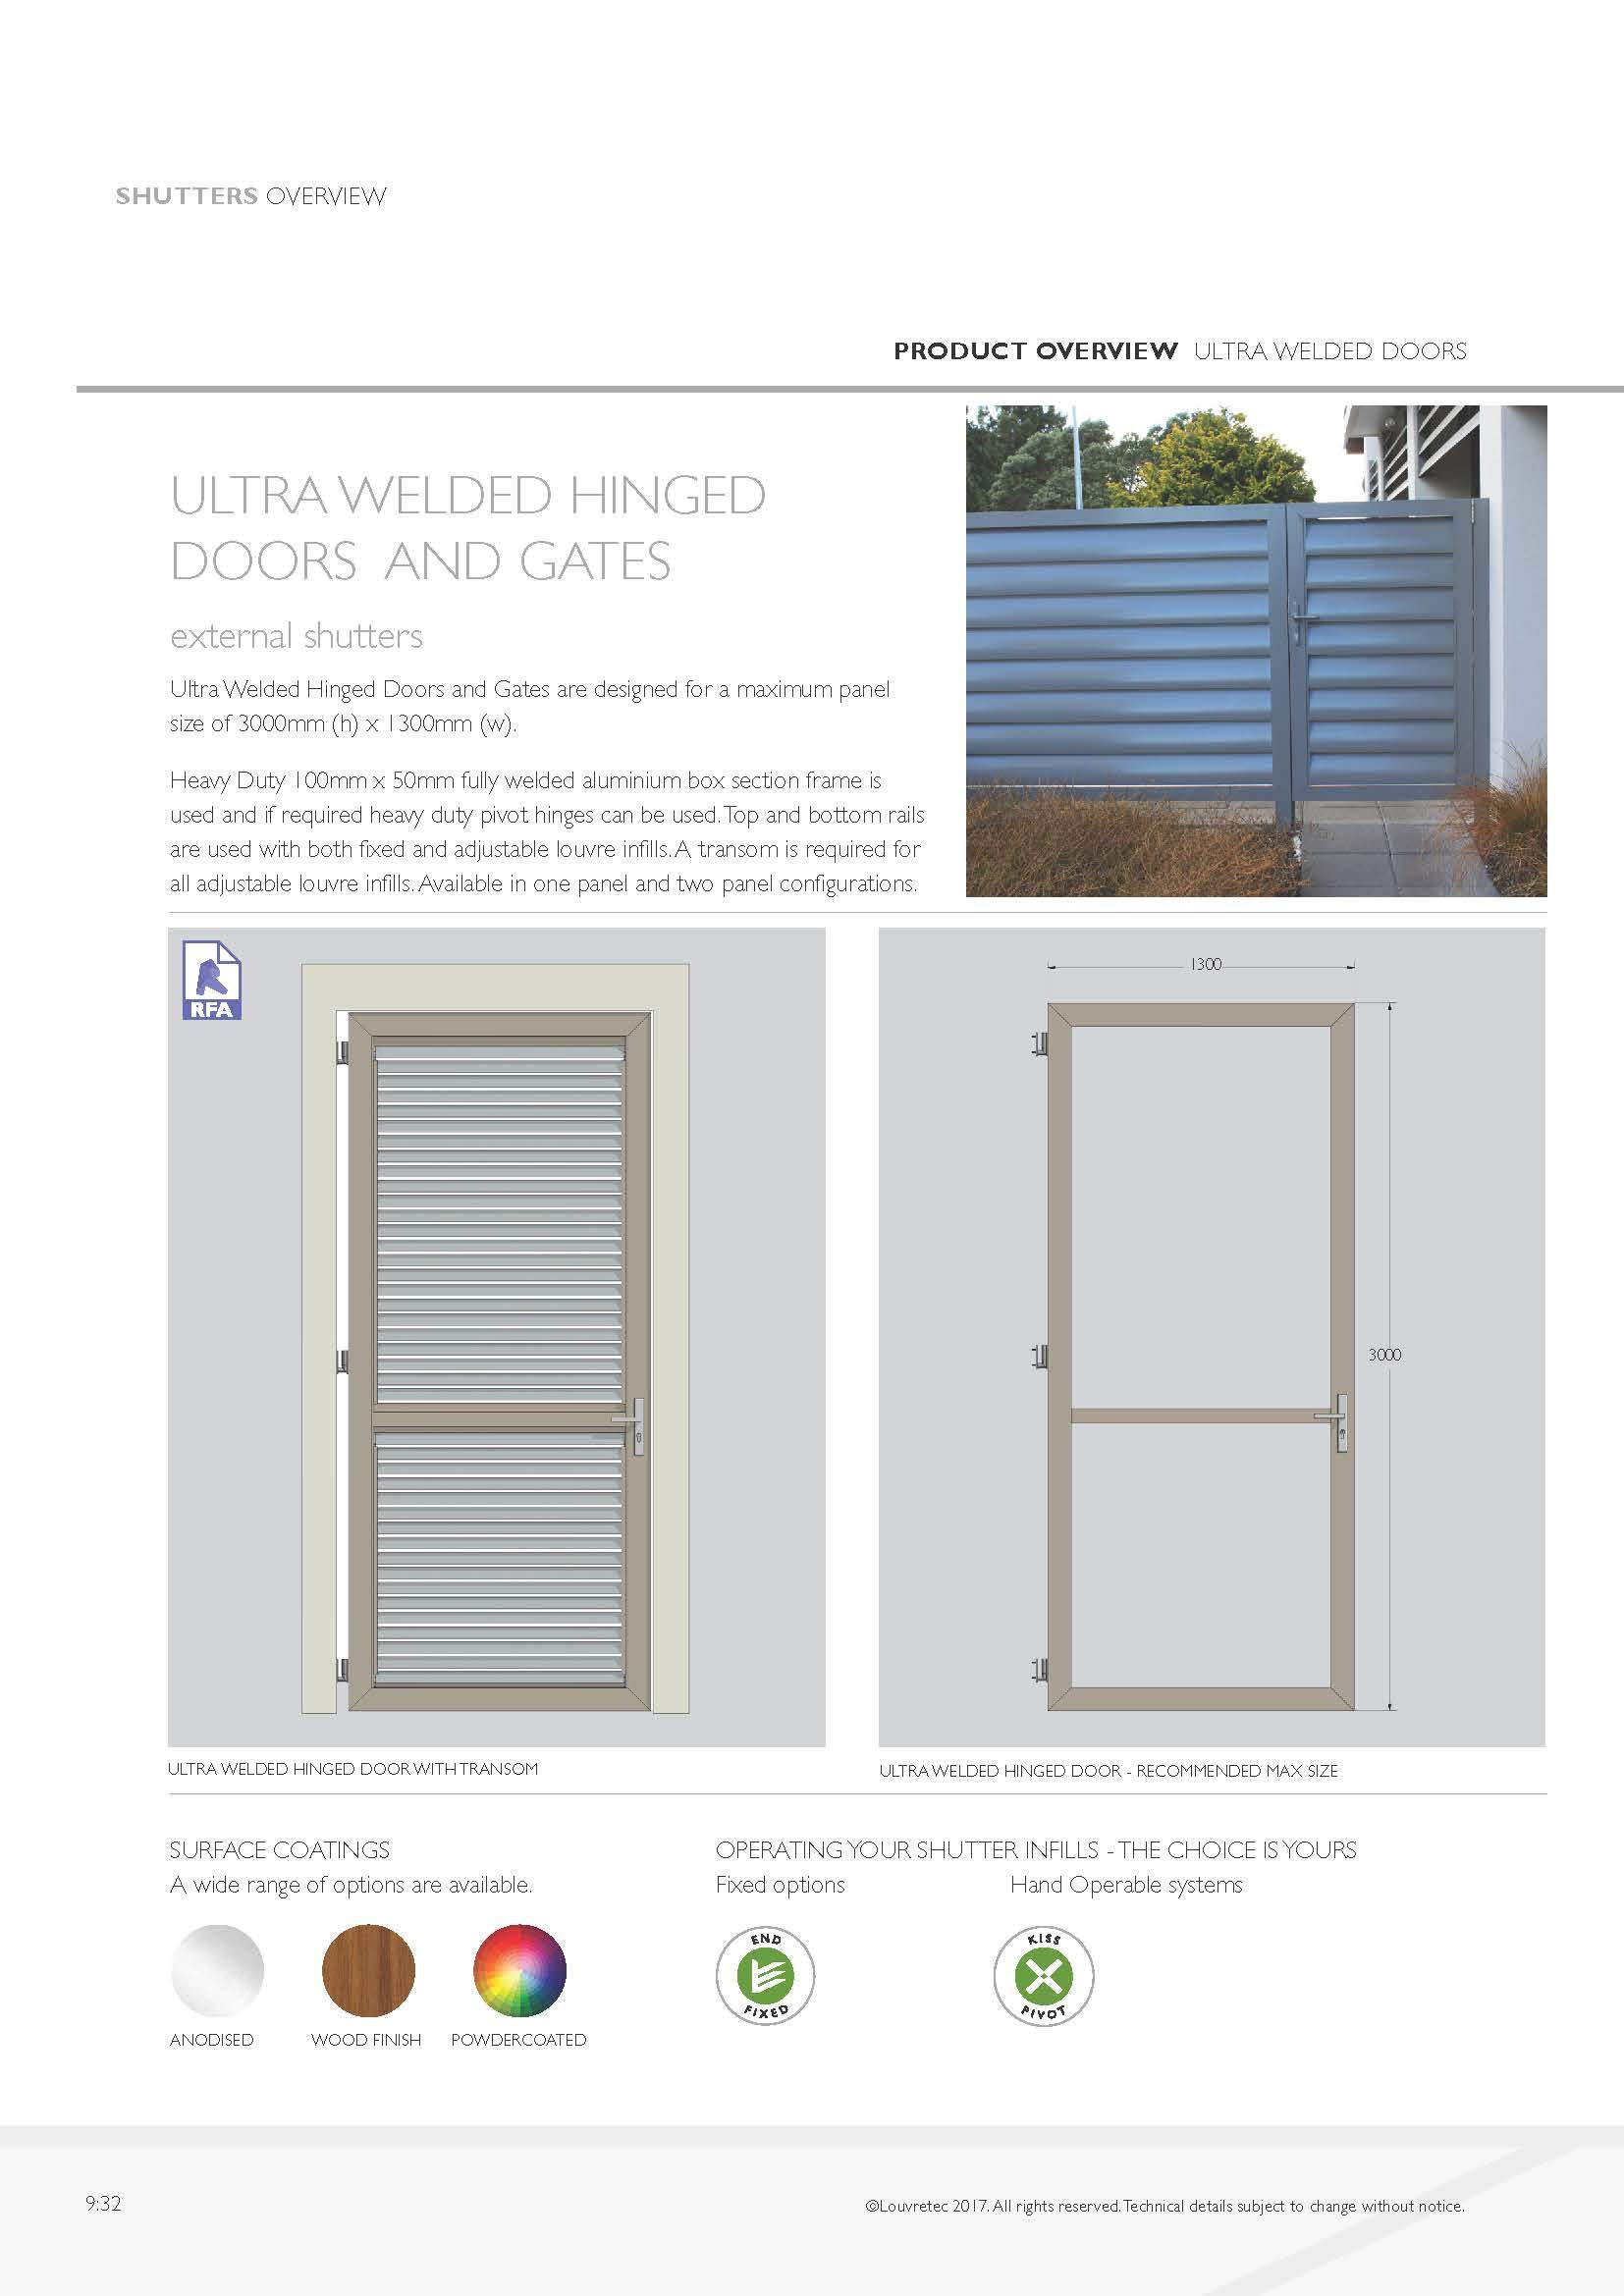 Ultra Welded Hinged Doors  9.32